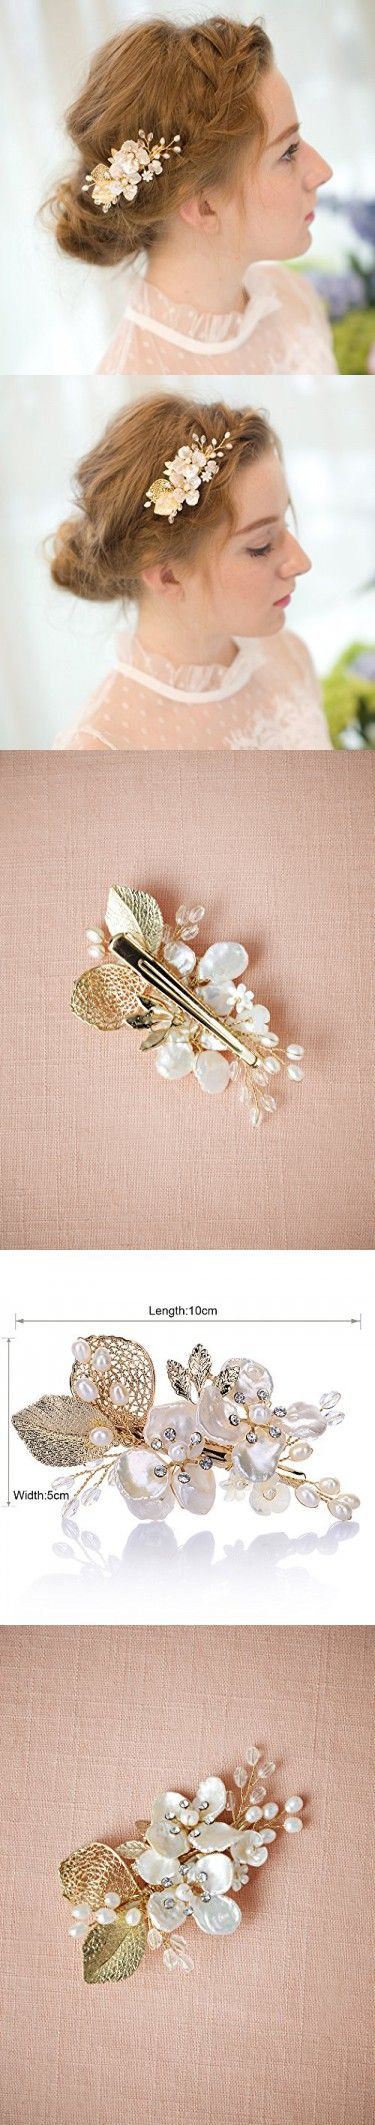 AW Vintage Gold Leaf Pearl Crystal Metal Bridal Hair Clips Barrettes Women and Girl Hair Clips Jewelry Headpiece Wedding Hair Accessories for Brides